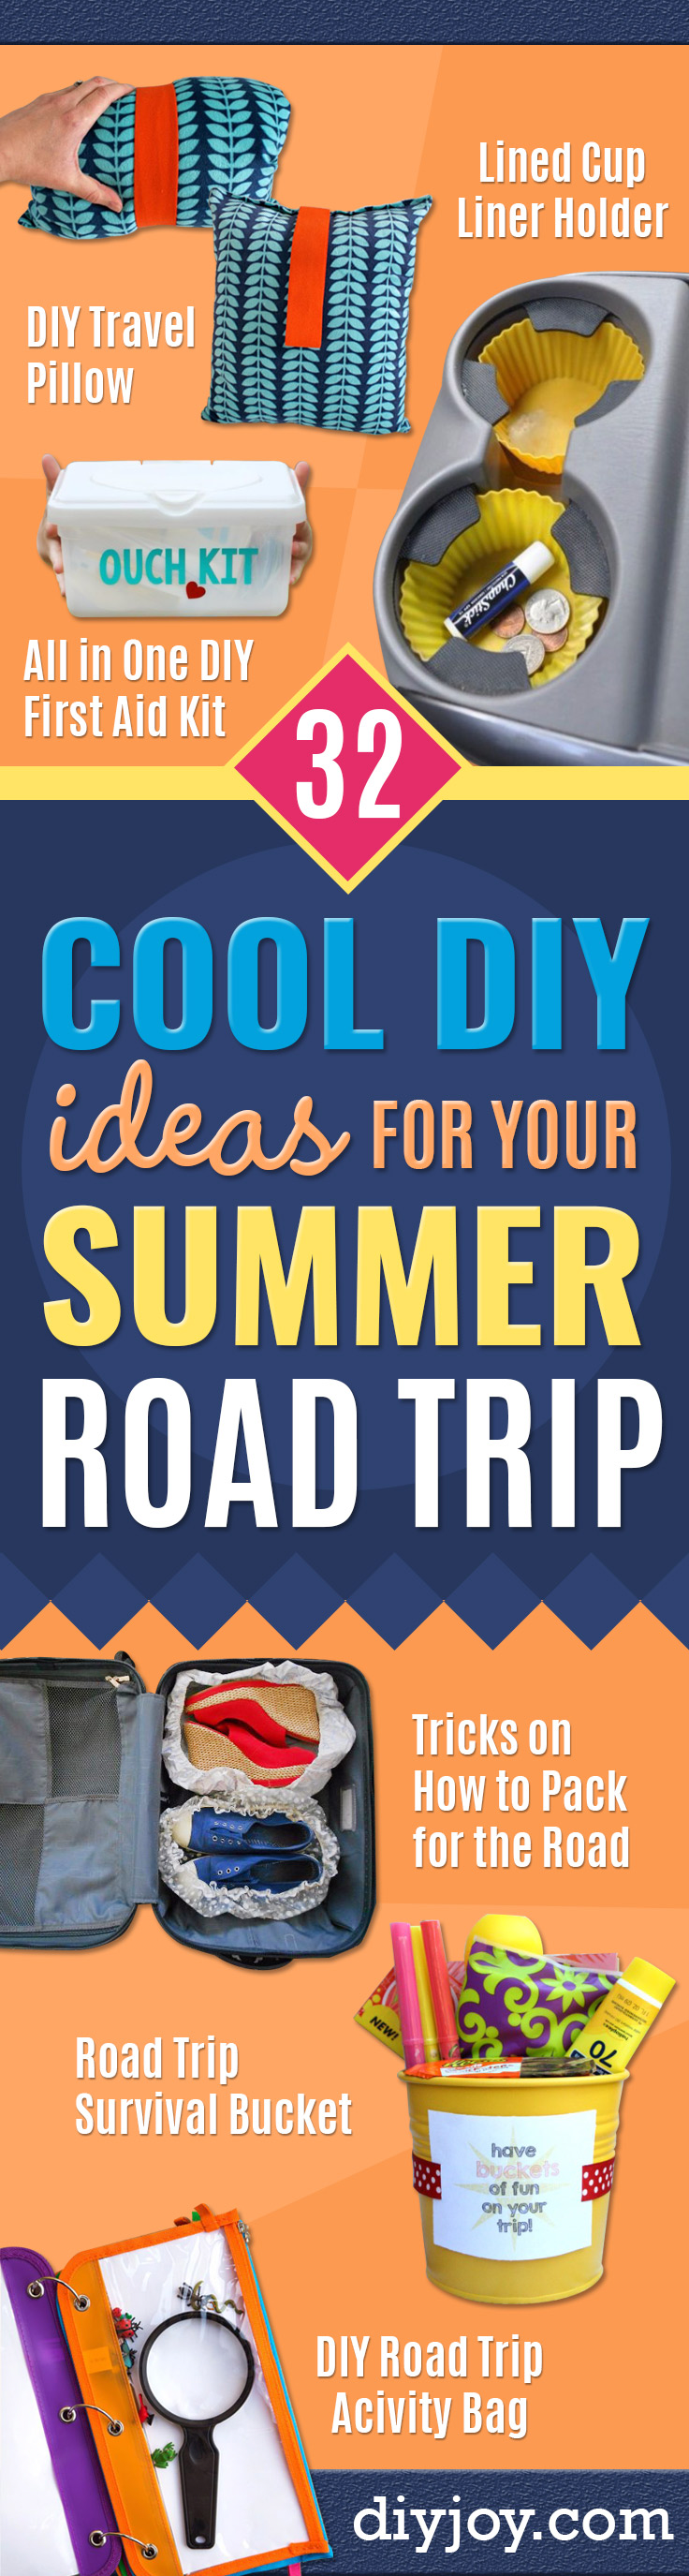 Best DIY Ideas for a Summer Road Trip - Road Trip Snacks - Cool Crafts and Easy Projects to Make For Road Trips in the Car - Fun Crafts to Make for Vacation - Creative Ideas for Making Cheap Travel Ideas With Creative Money Saving Tips